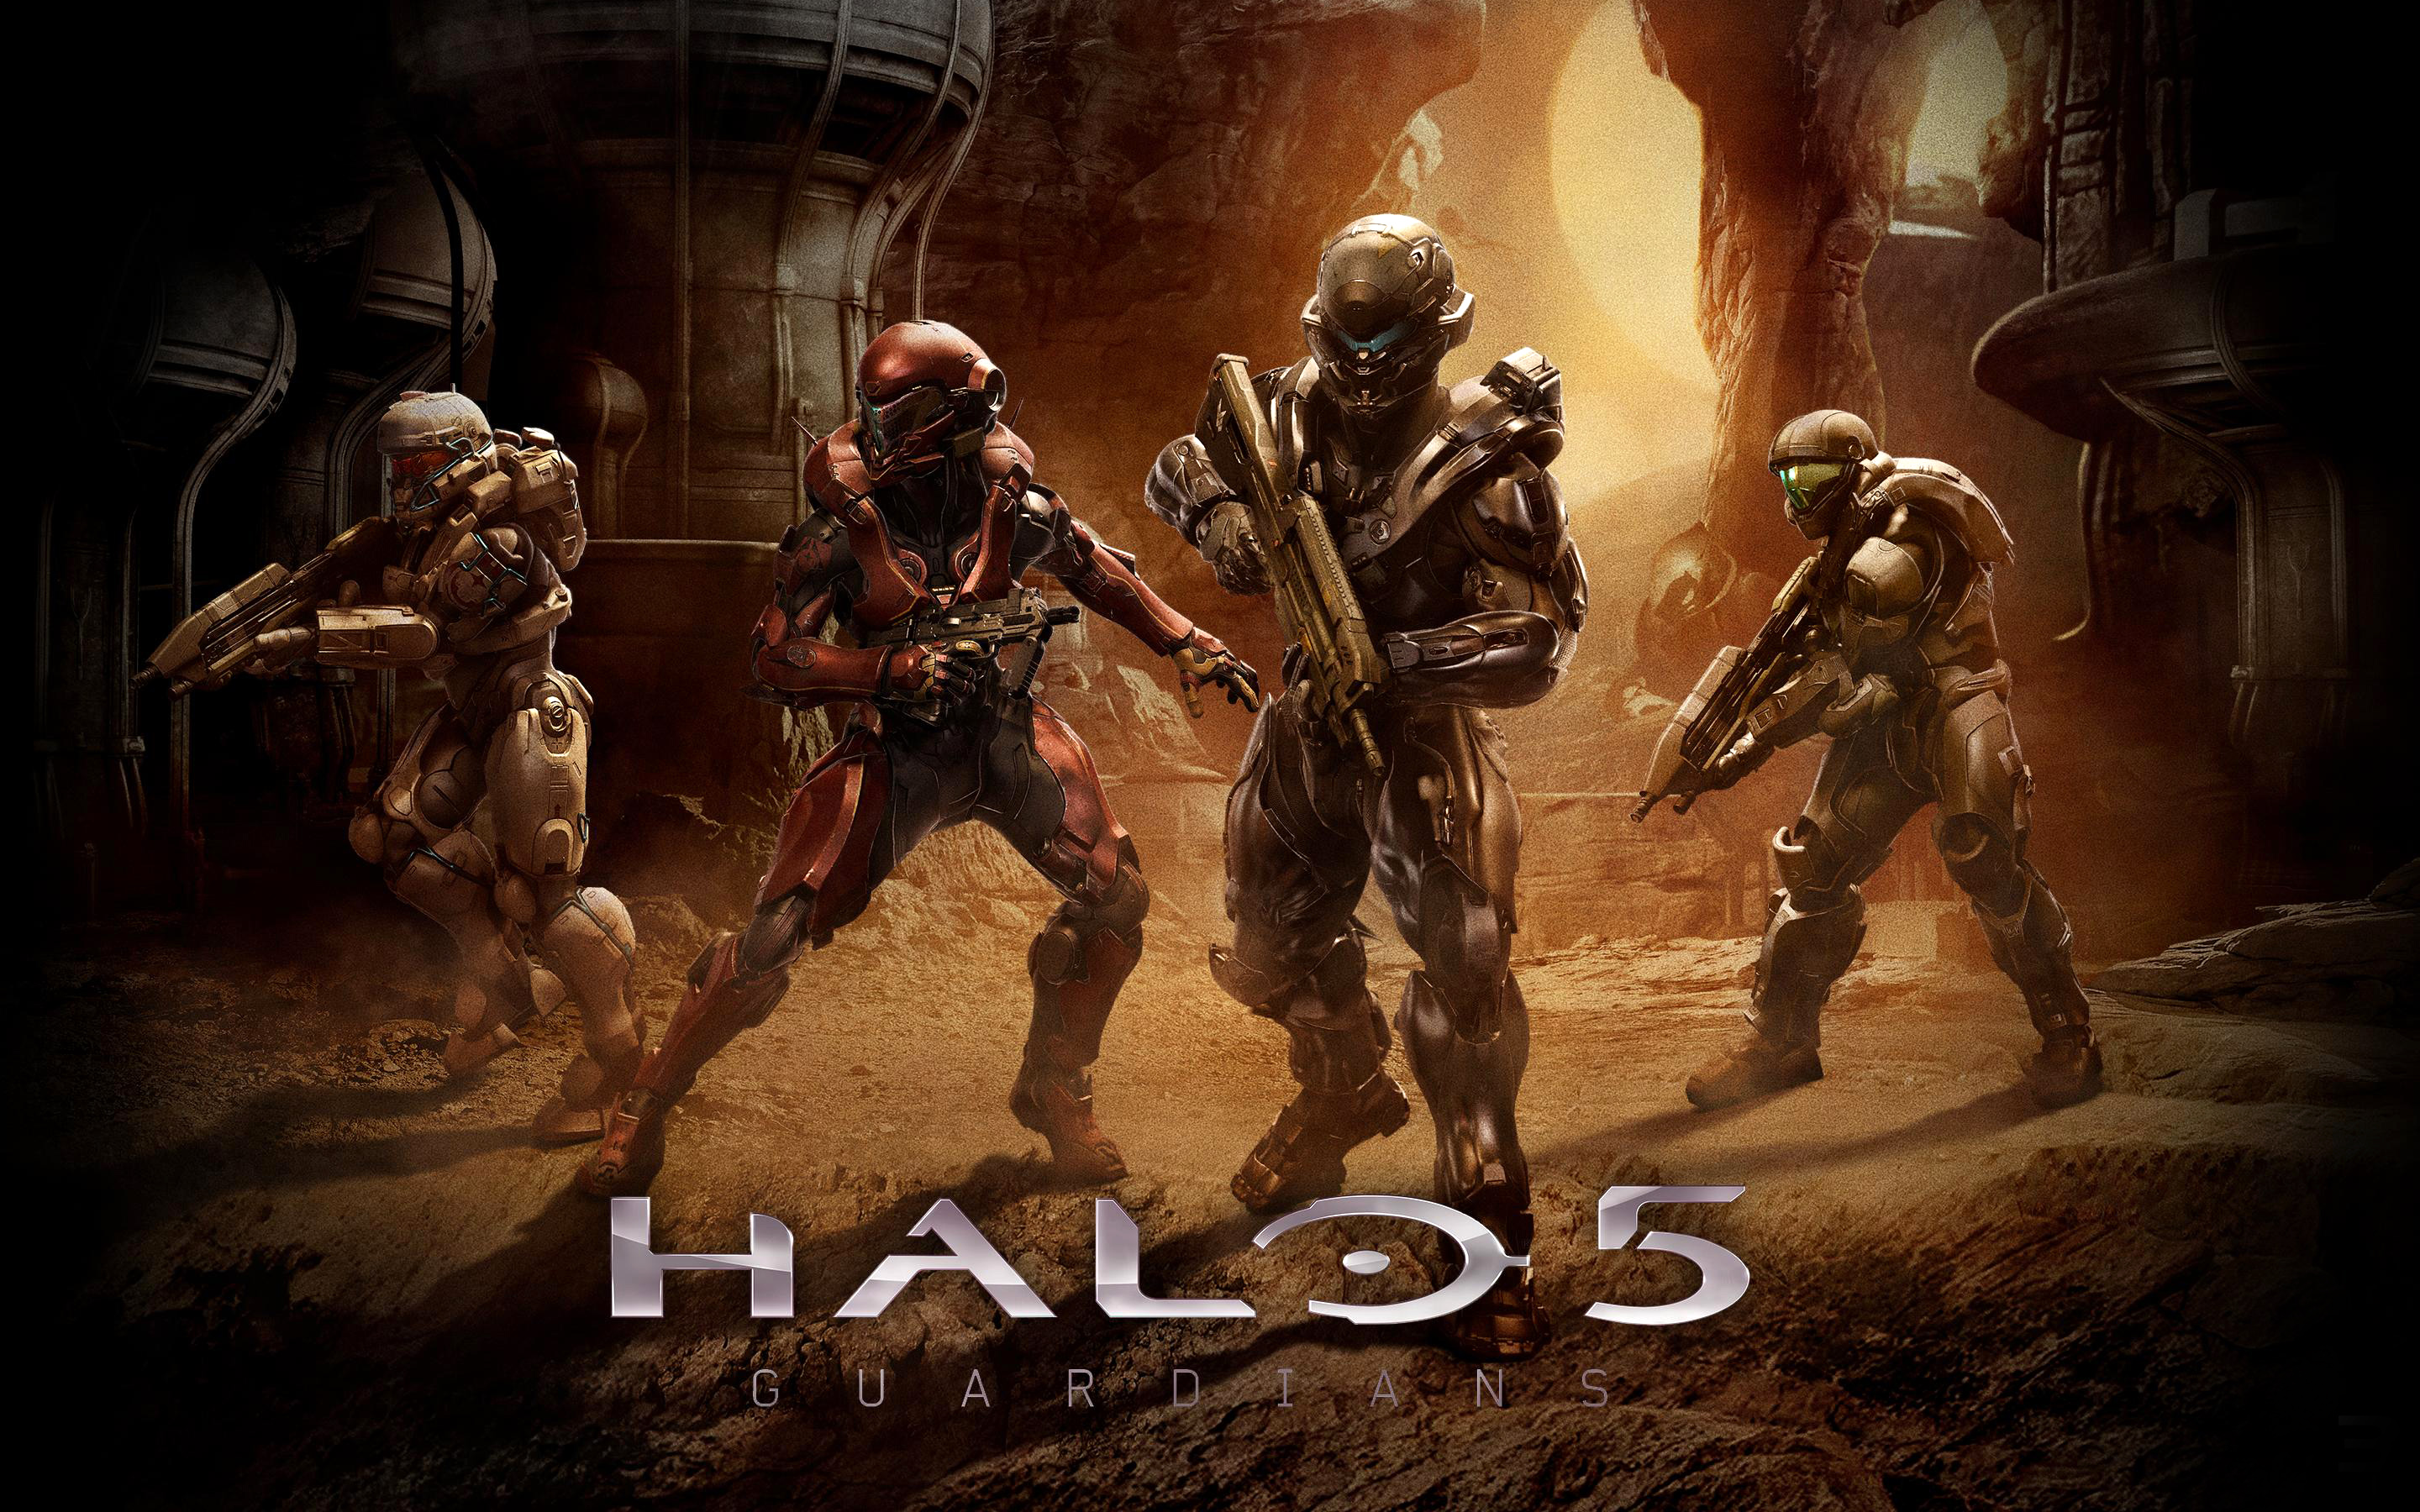 Halo 5 Guardians Wallpaper: Halo 5 Guardians Team, HD Games, 4k Wallpapers, Images